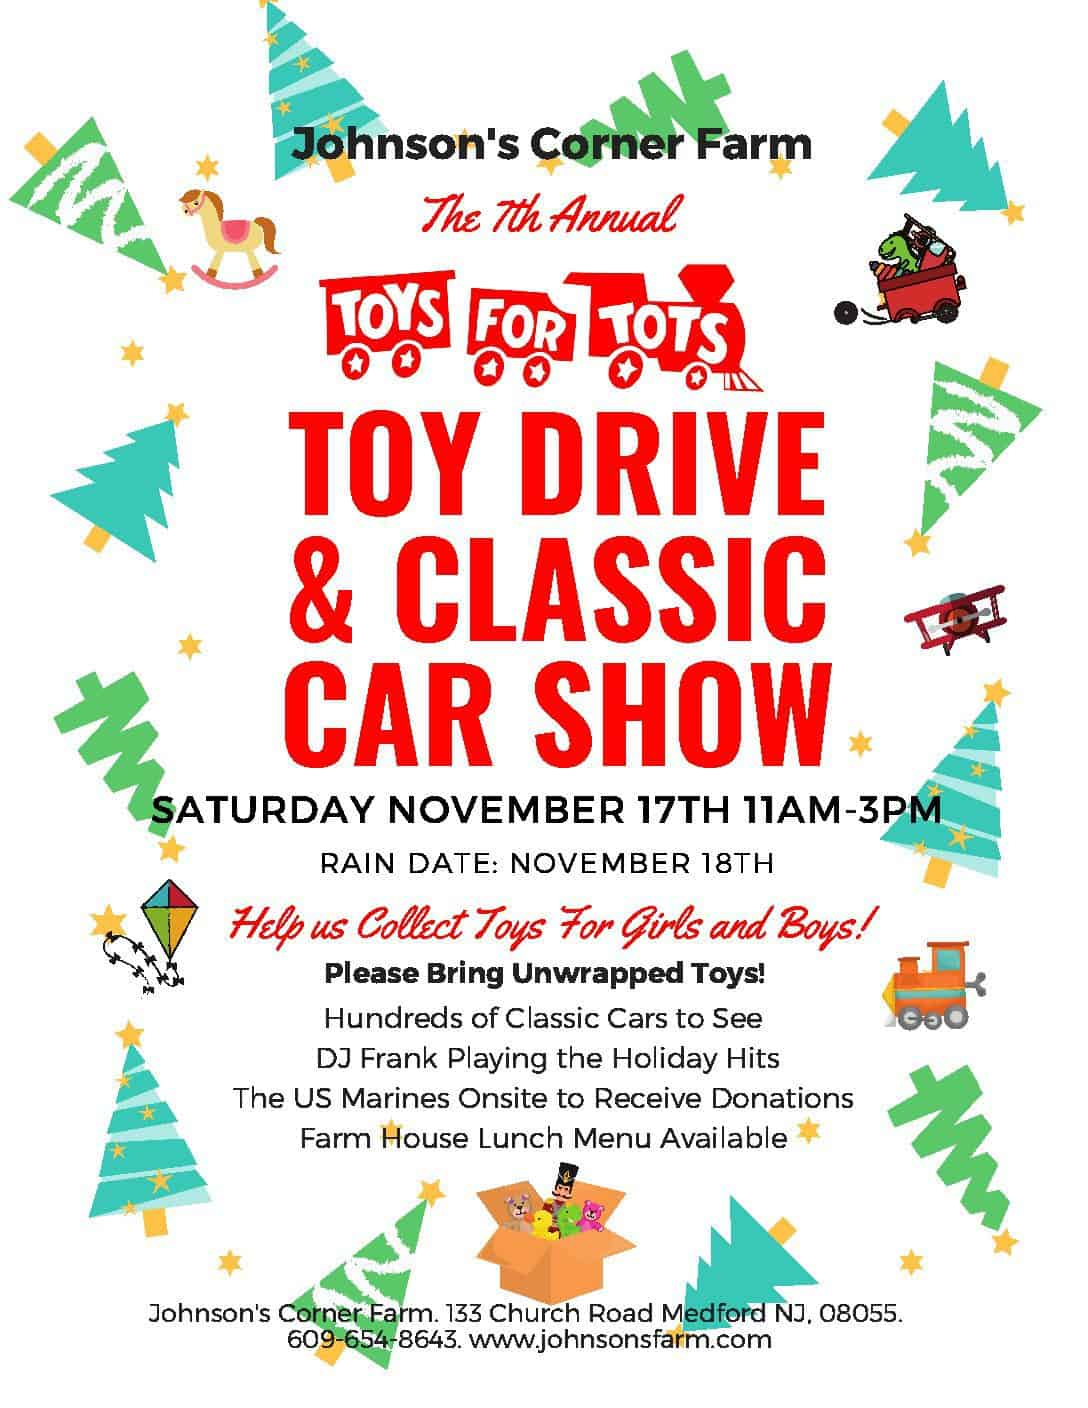 Toys For Tots Car Show And Gift Collection Johnsons Farm Pumkin - Toys for tots car show 2018